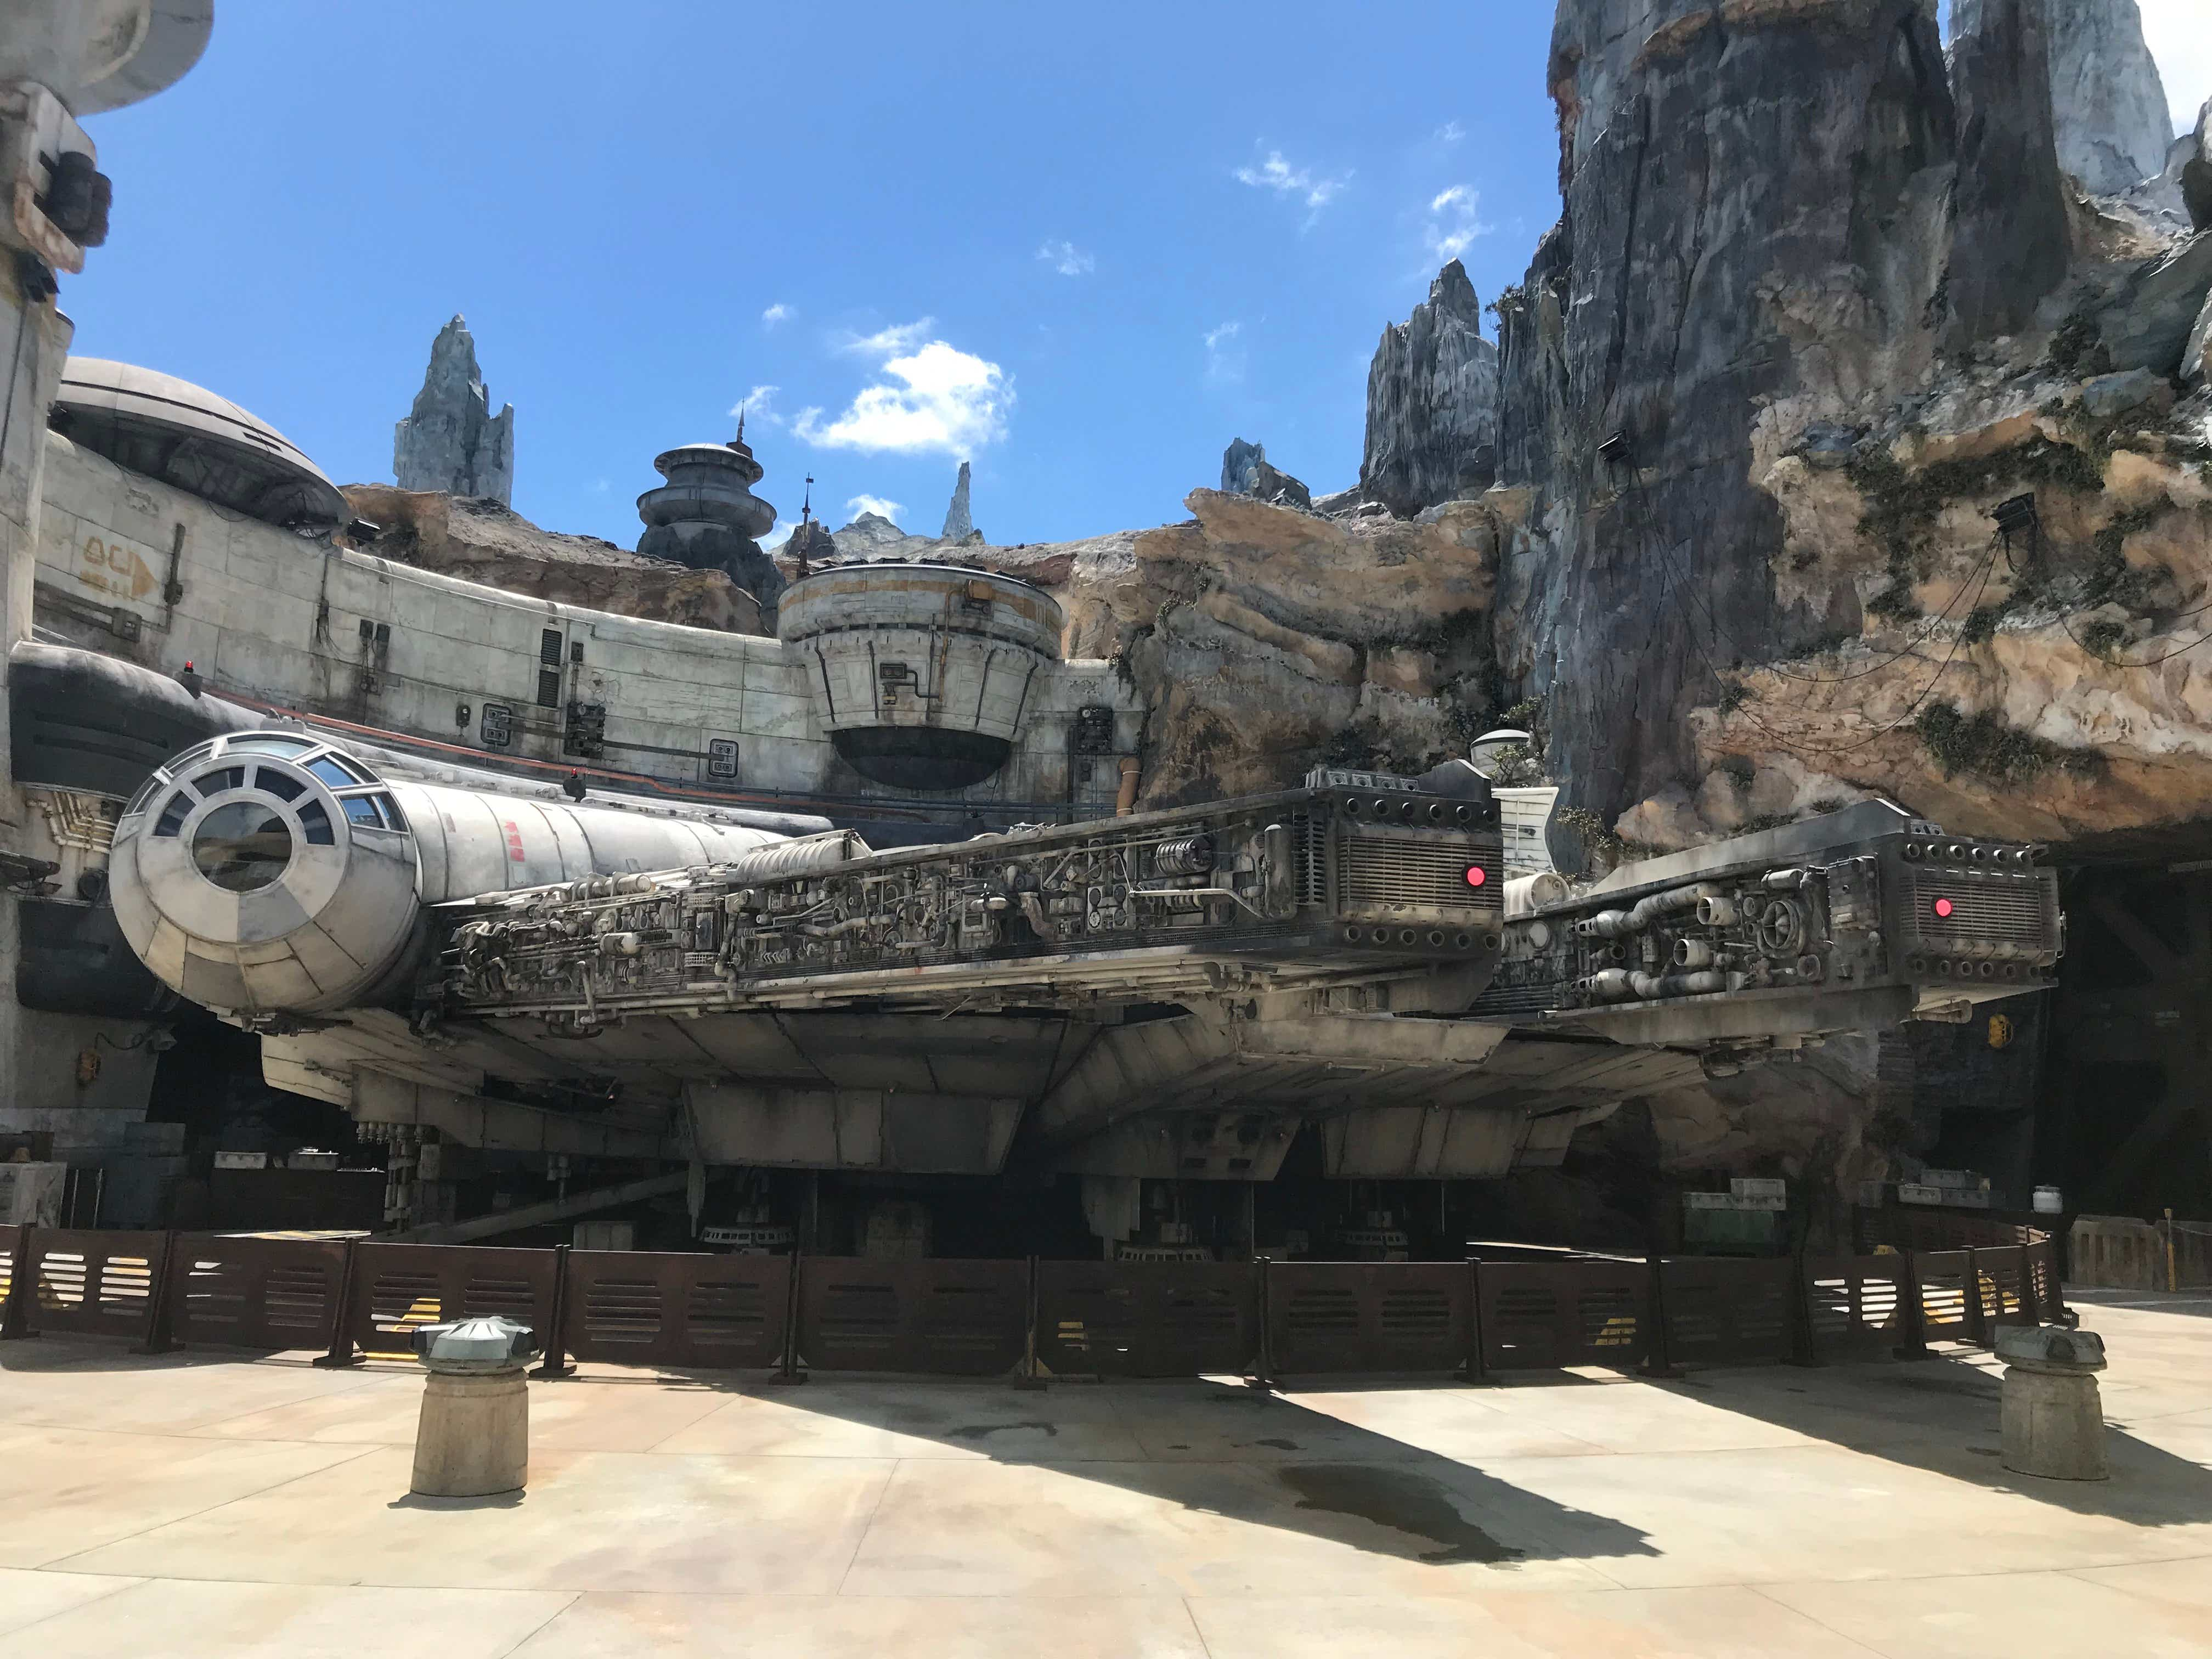 Video: Inside the new Star Wars: Galaxy's Edge attraction